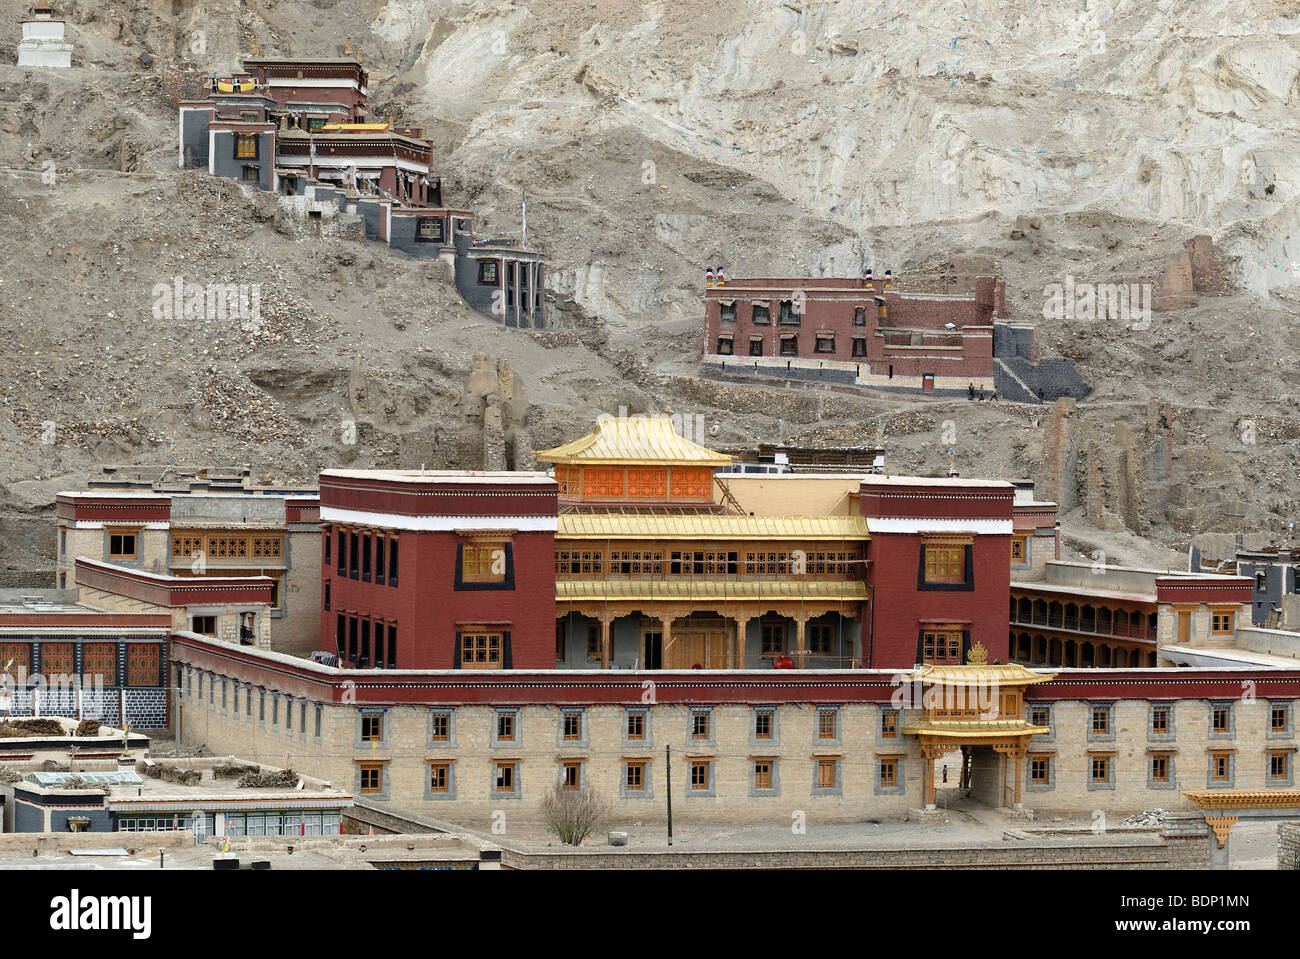 Tibetan temple and monastery complex in Sakya architectural style and painting on the mountainside, Sakya, Central - Stock Image